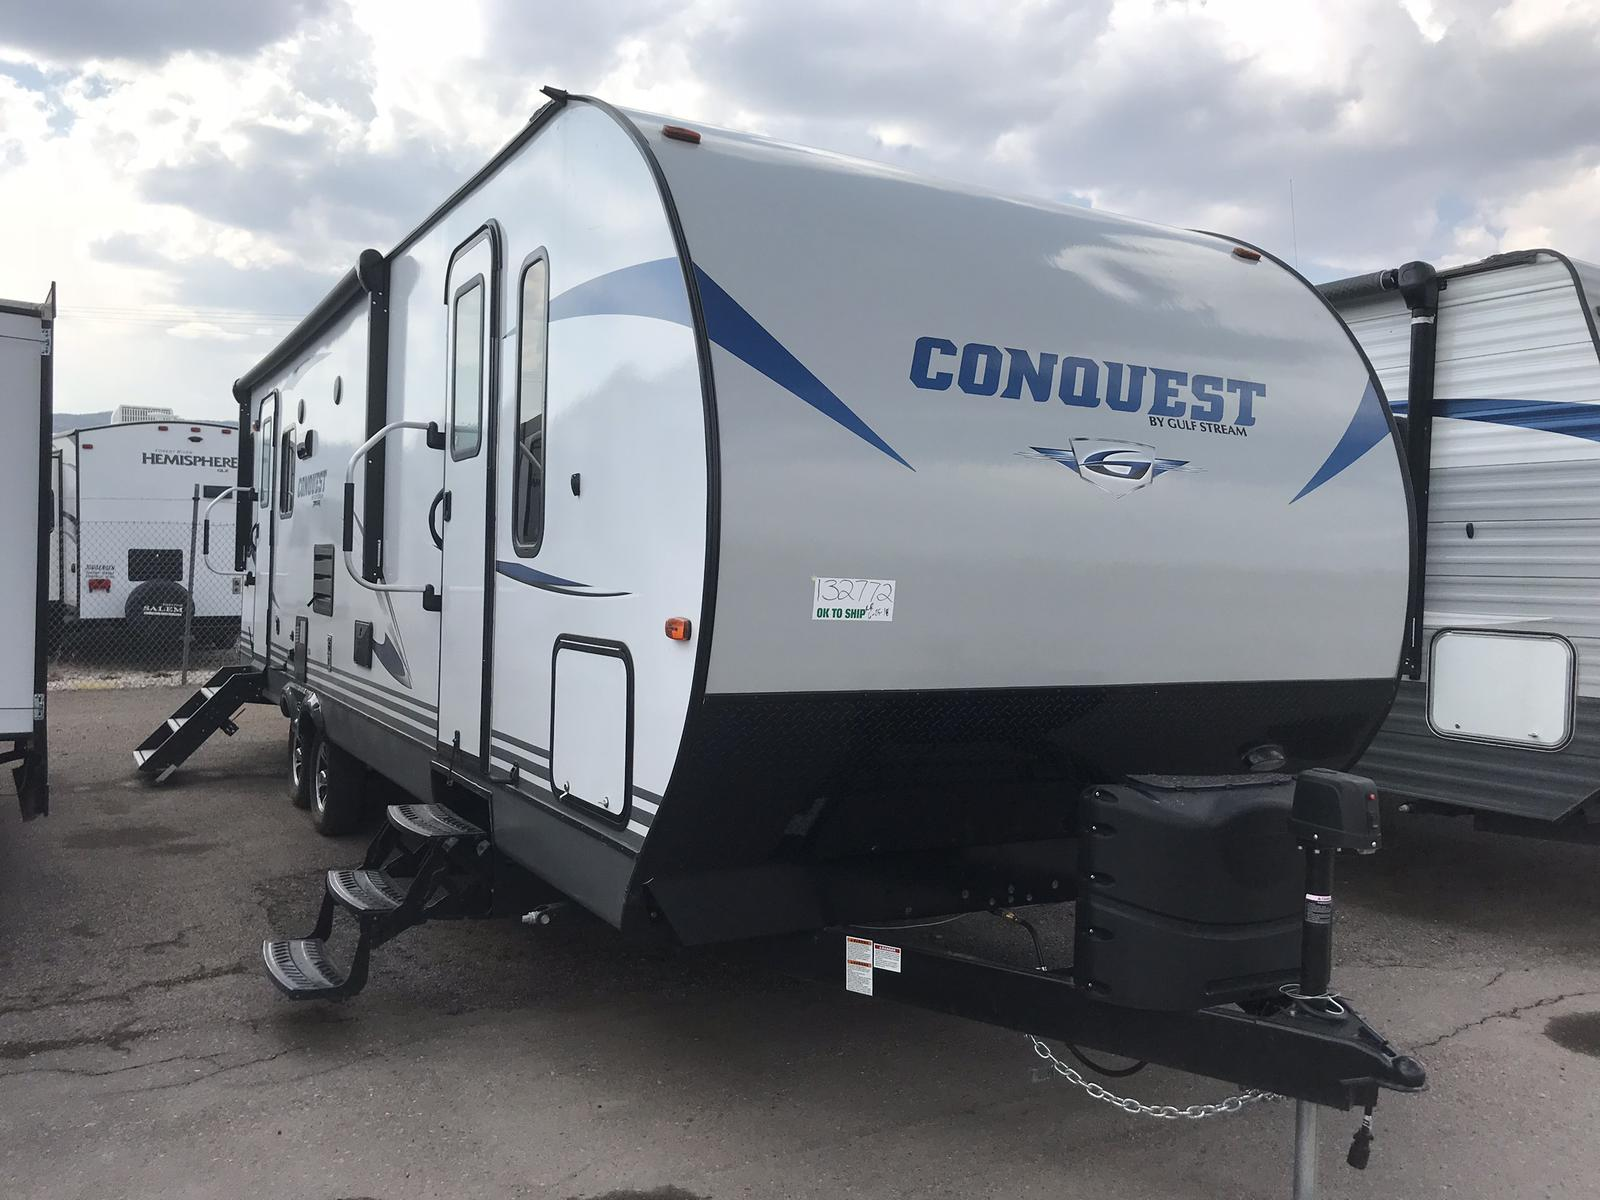 2019 conquest by gulf stream 262rls